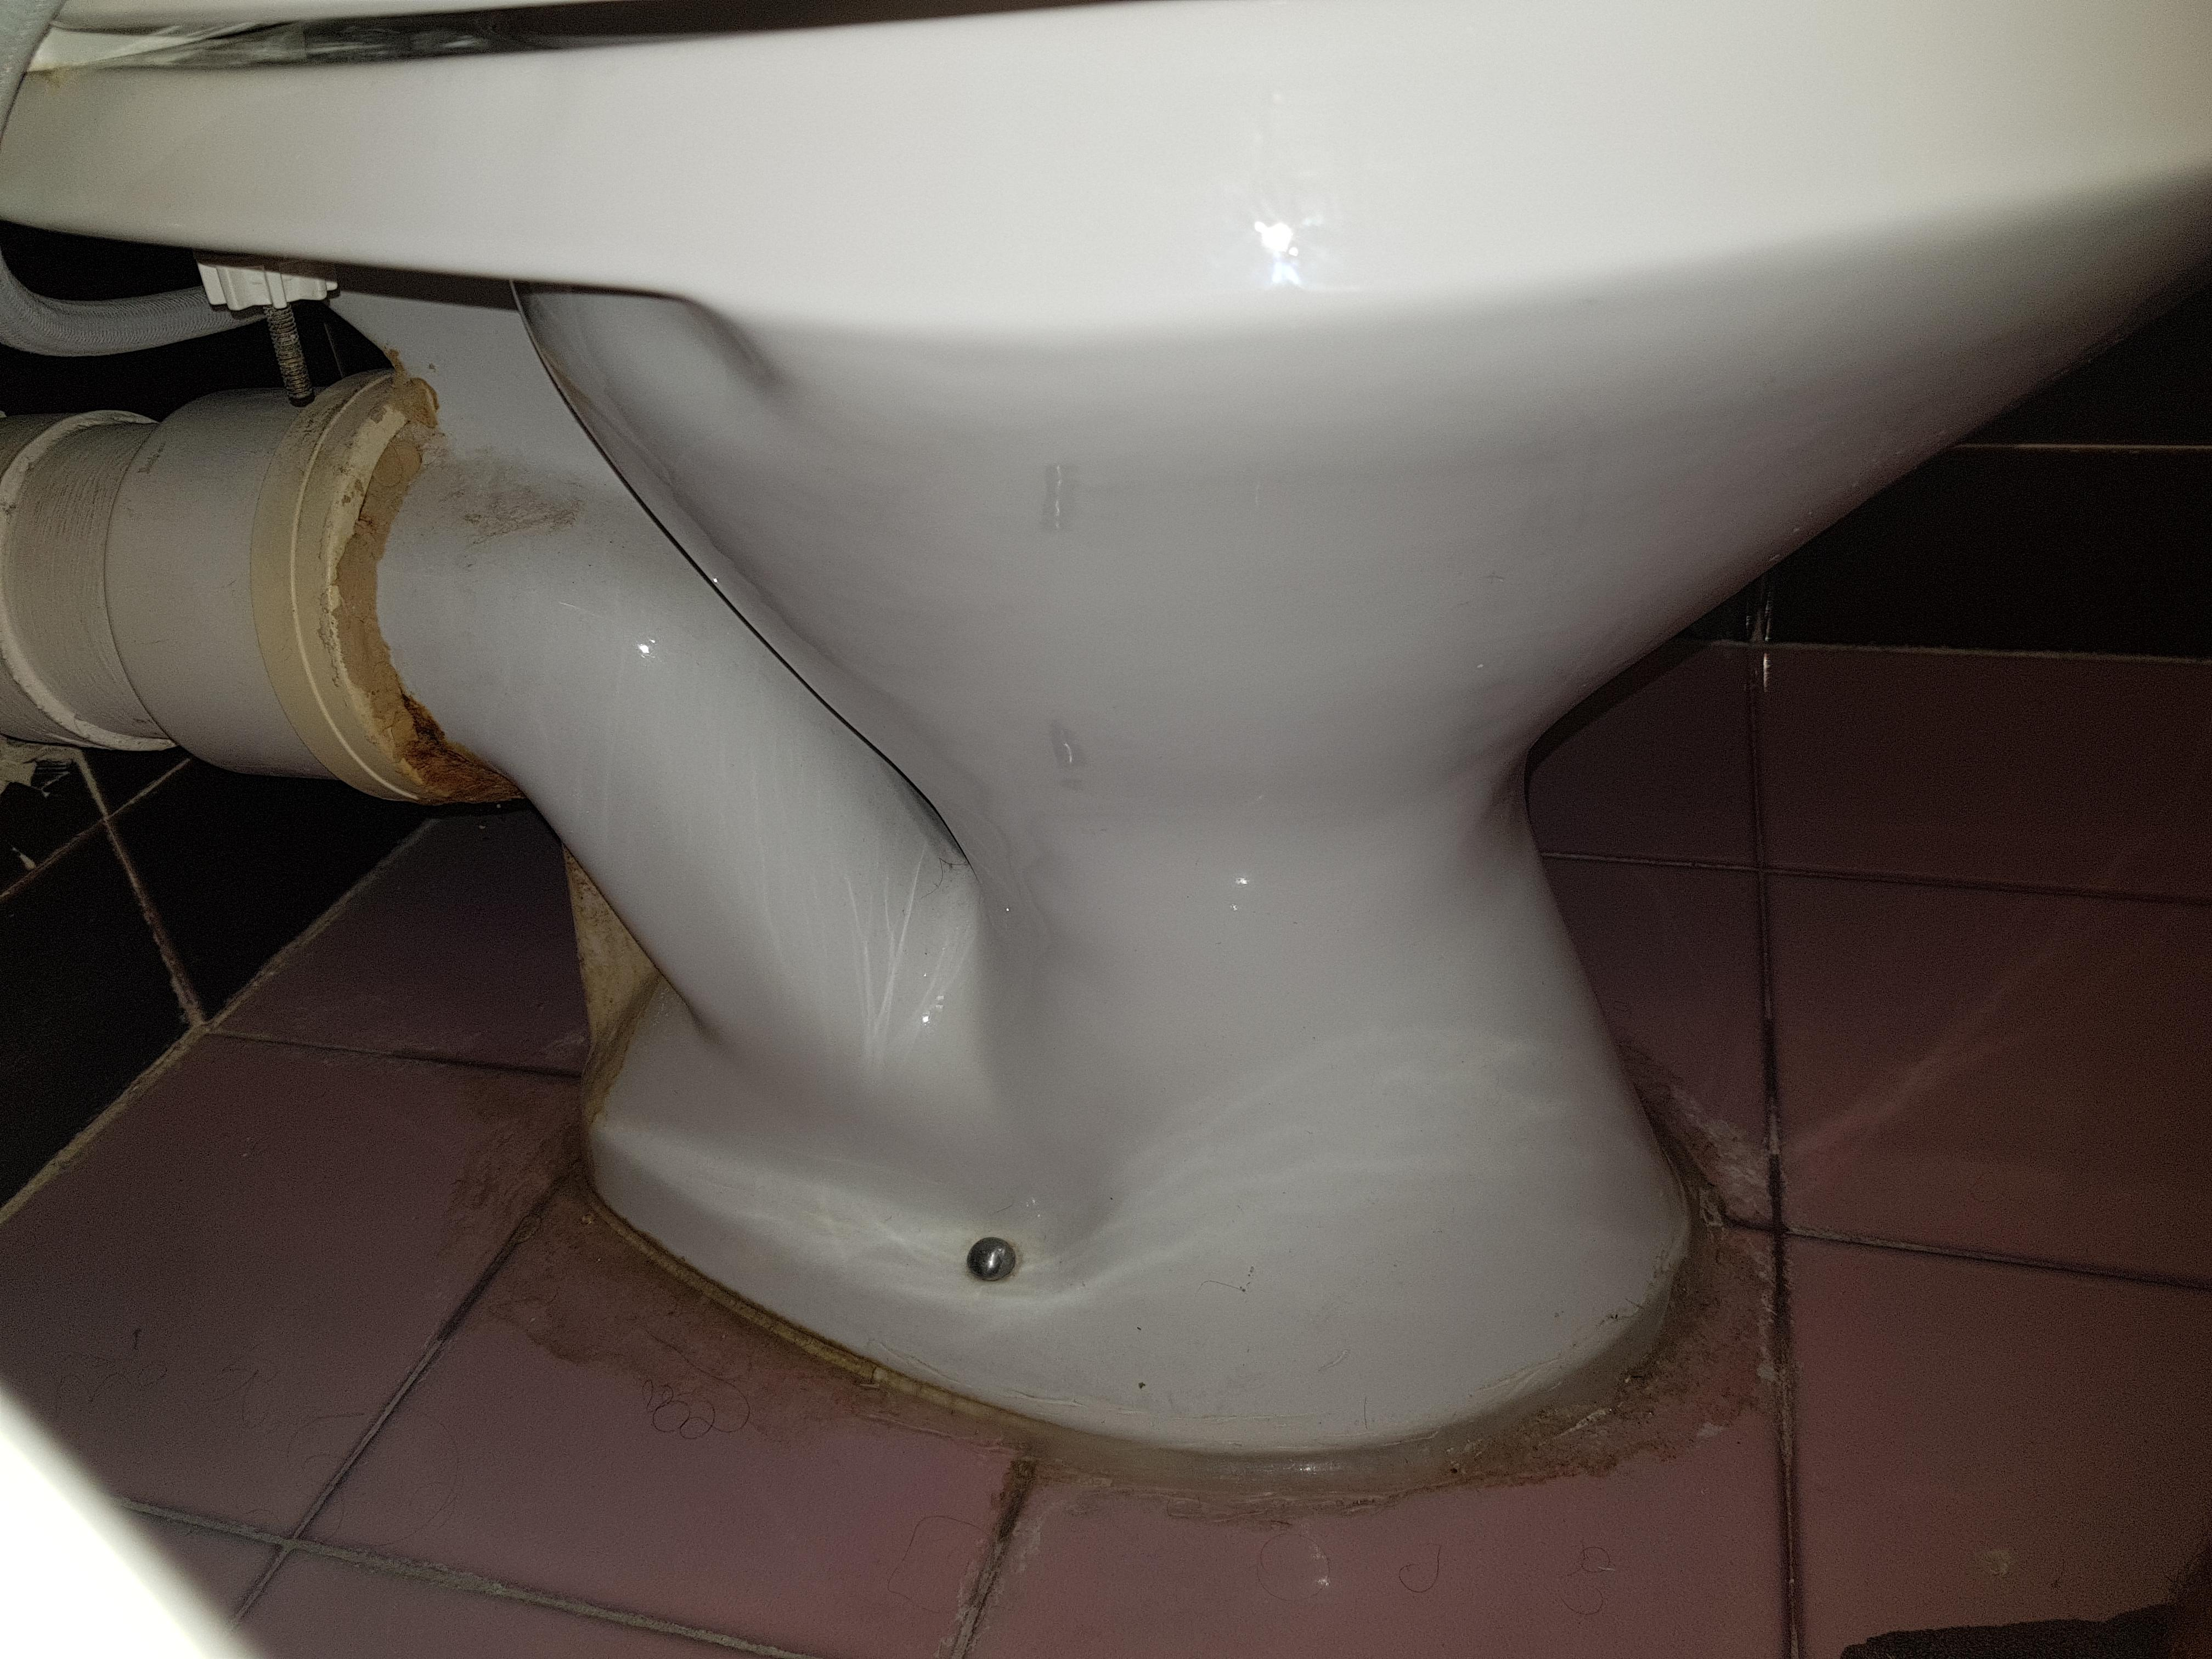 Rear Discharge Toilet Leaking How Does A Layperson Stop This Fixit